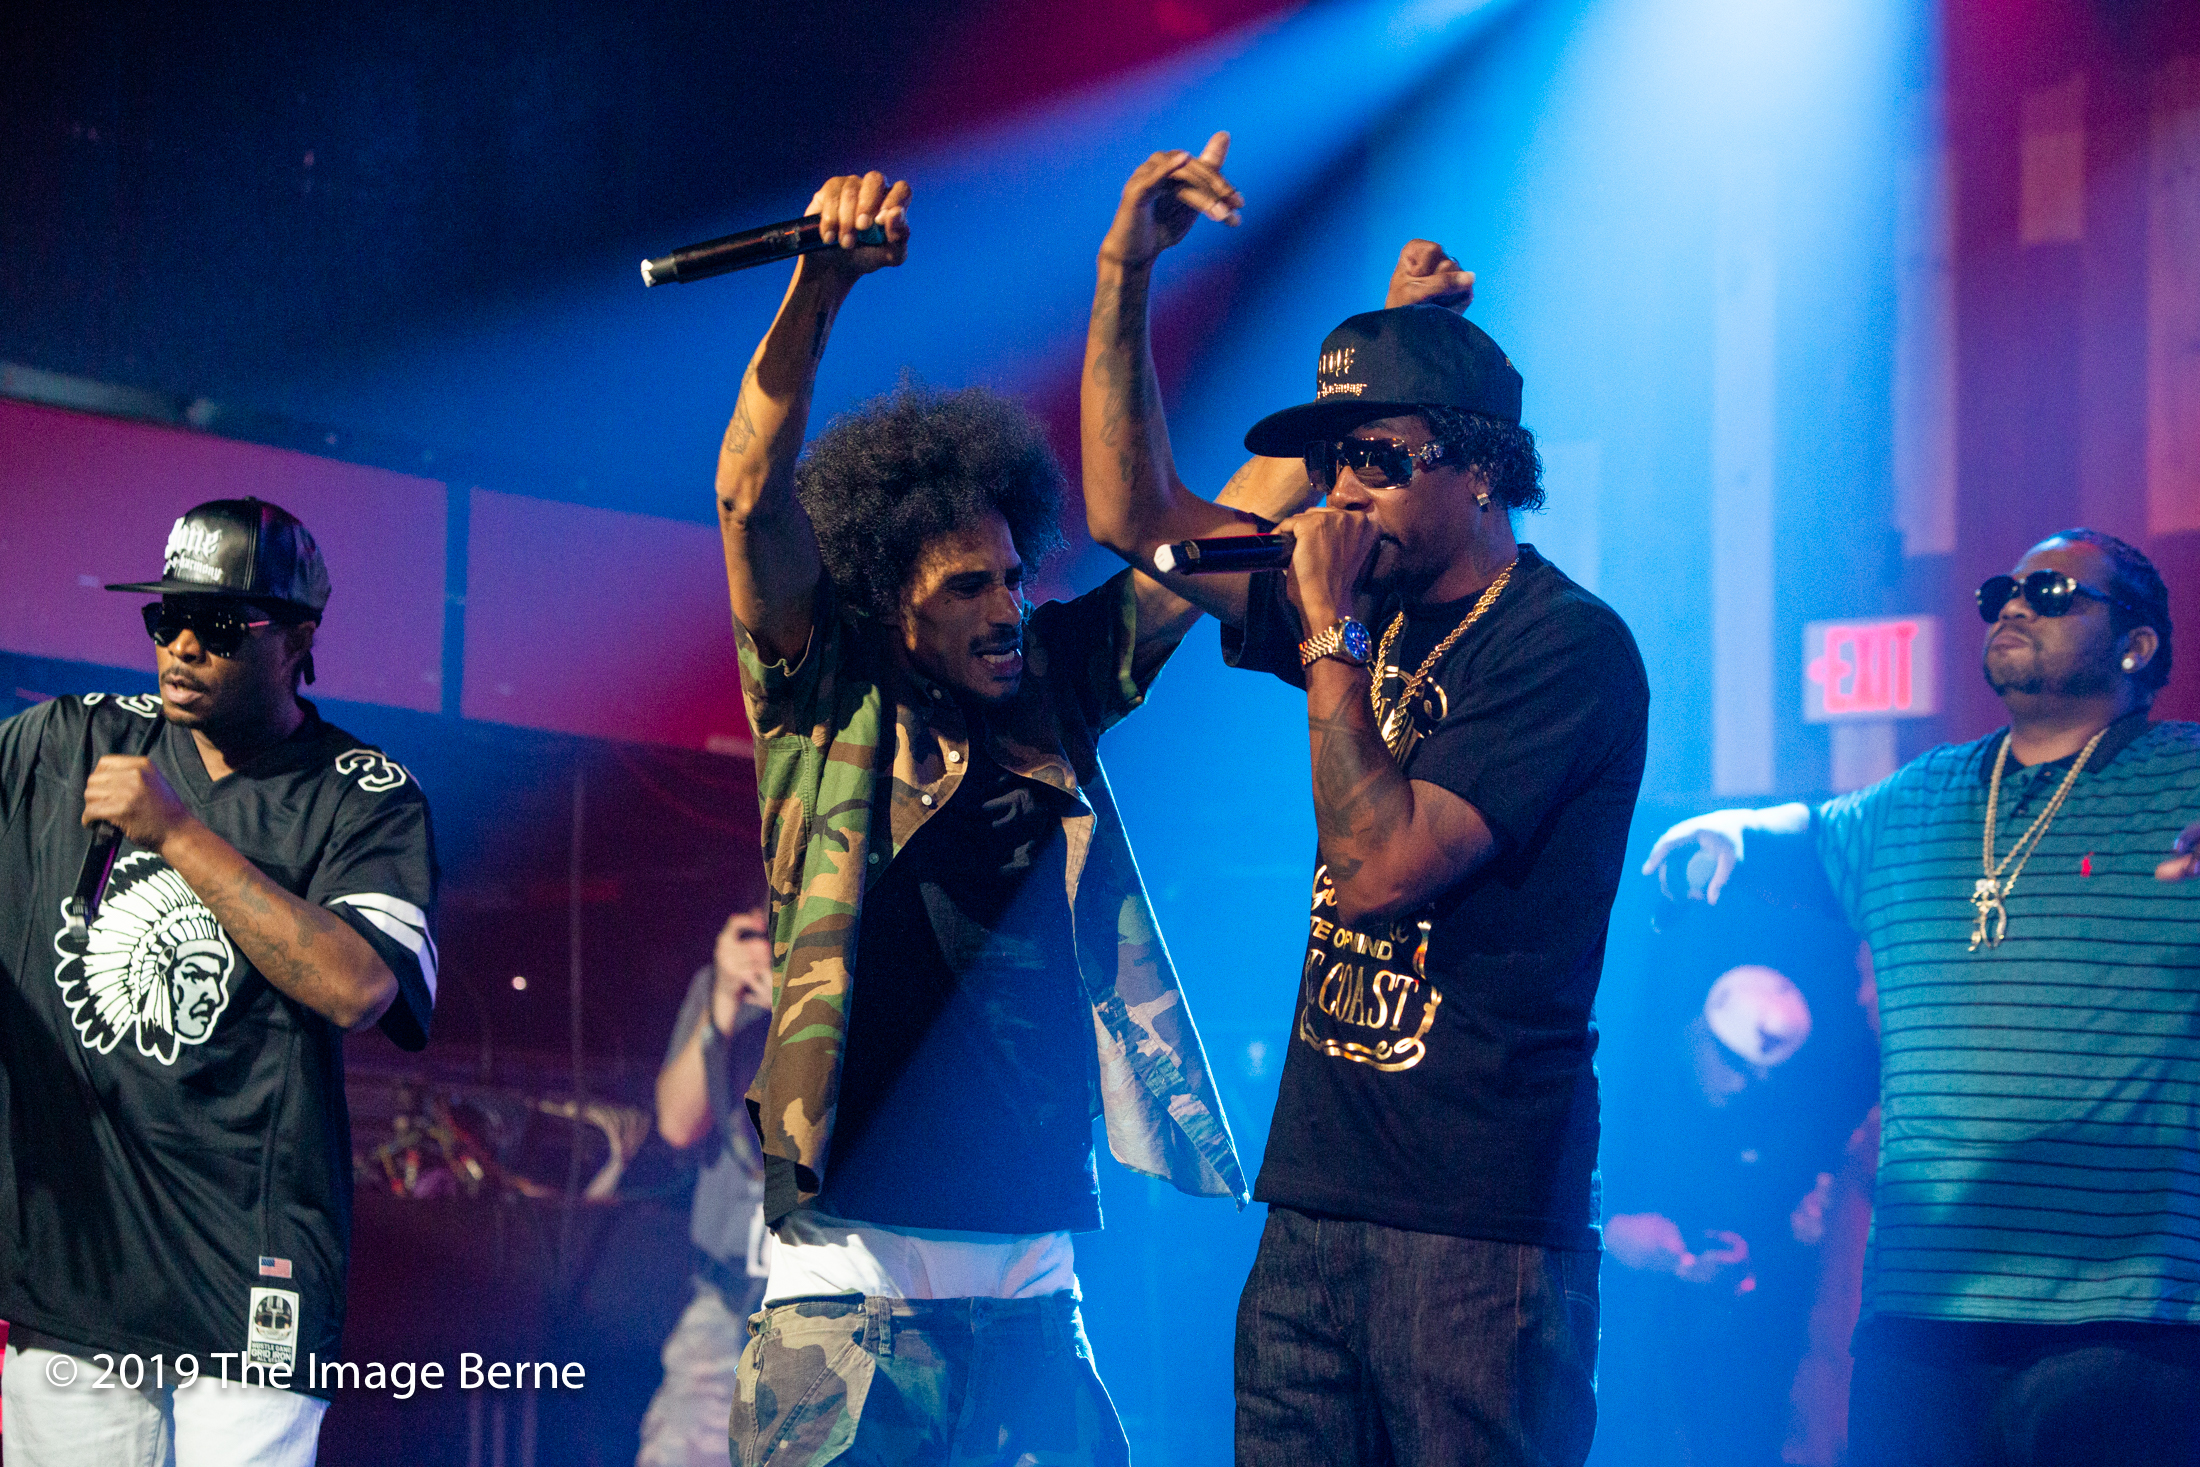 Krayzie Bone, Wish Bone, Flesh-N-Bone, Layzie Bone, and Bizzy Bone-033.jpg